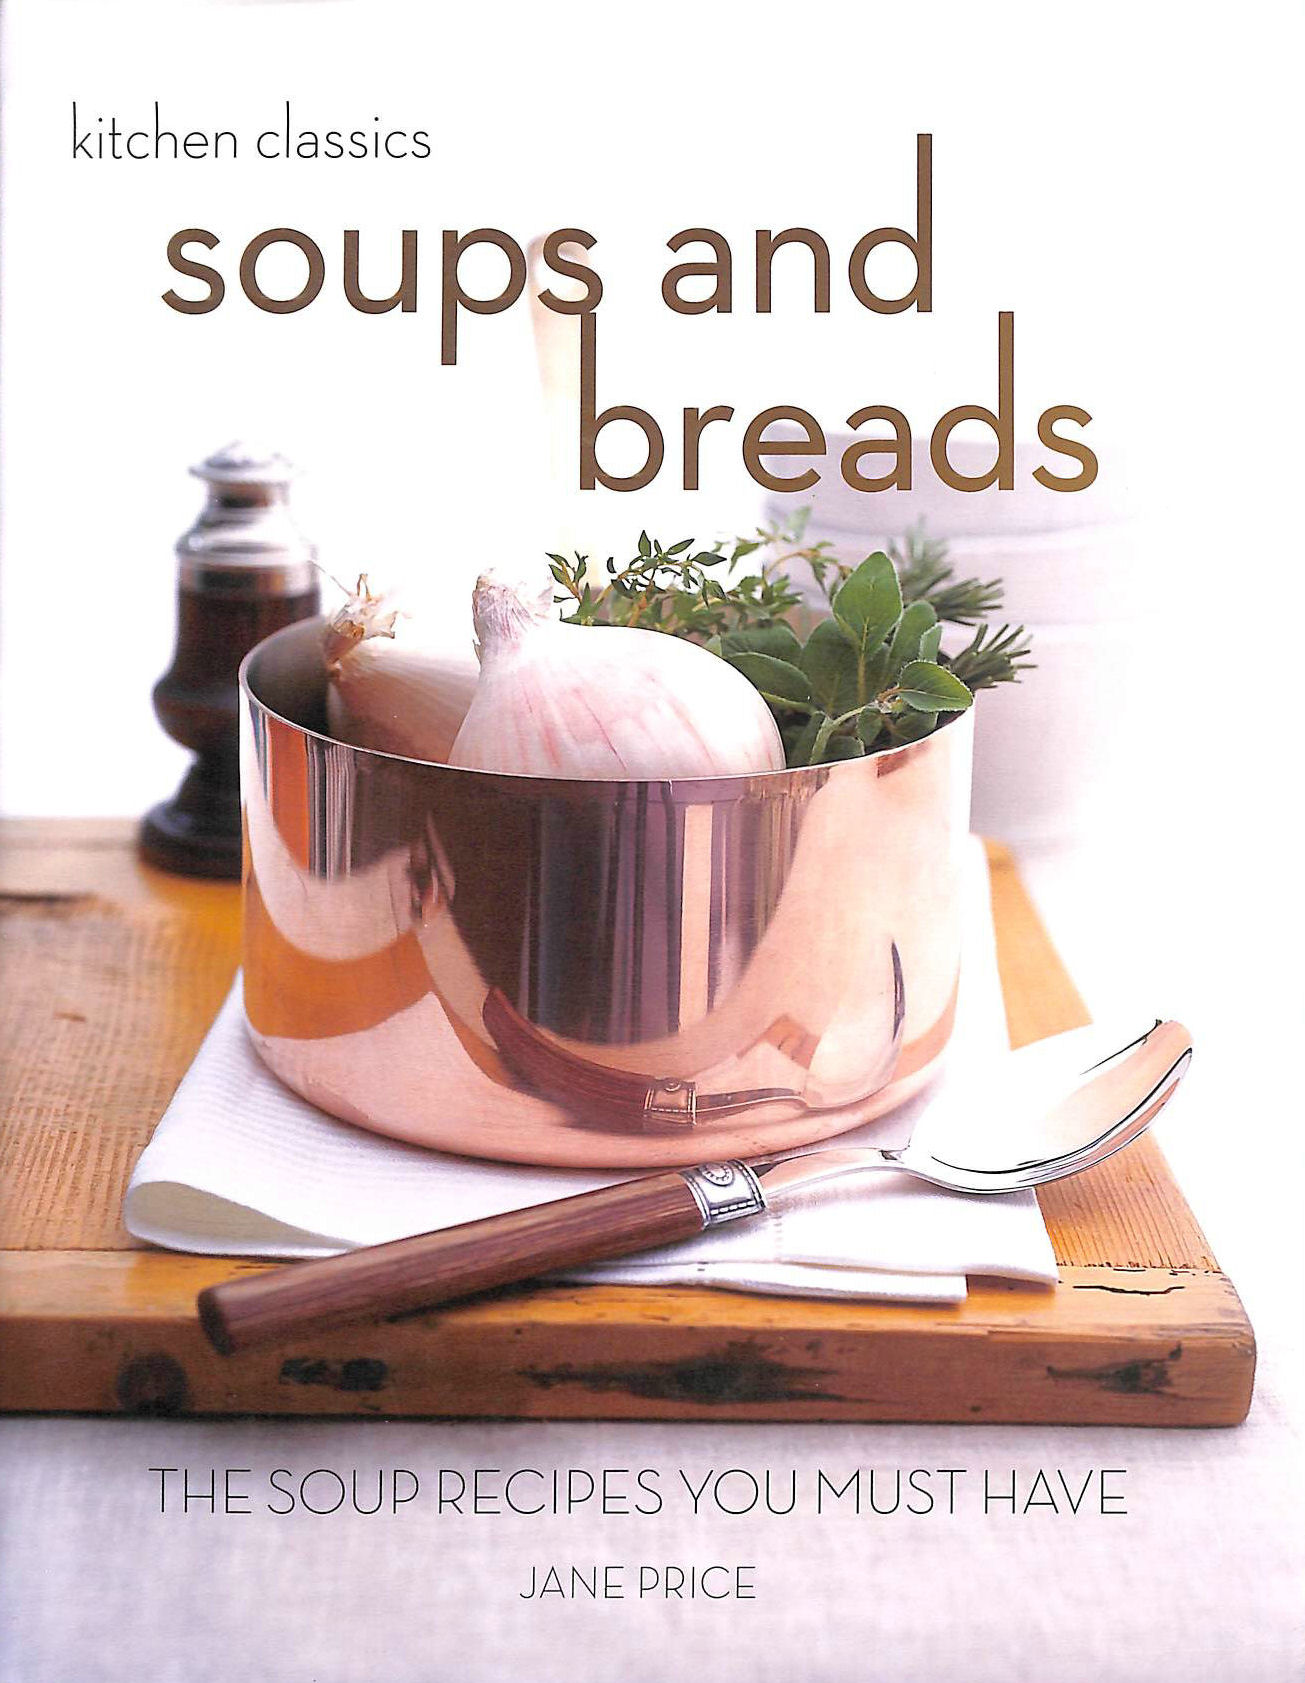 Image for Soups and Breads: The Soup Recipes You Must Have (Kitchen Classics series)